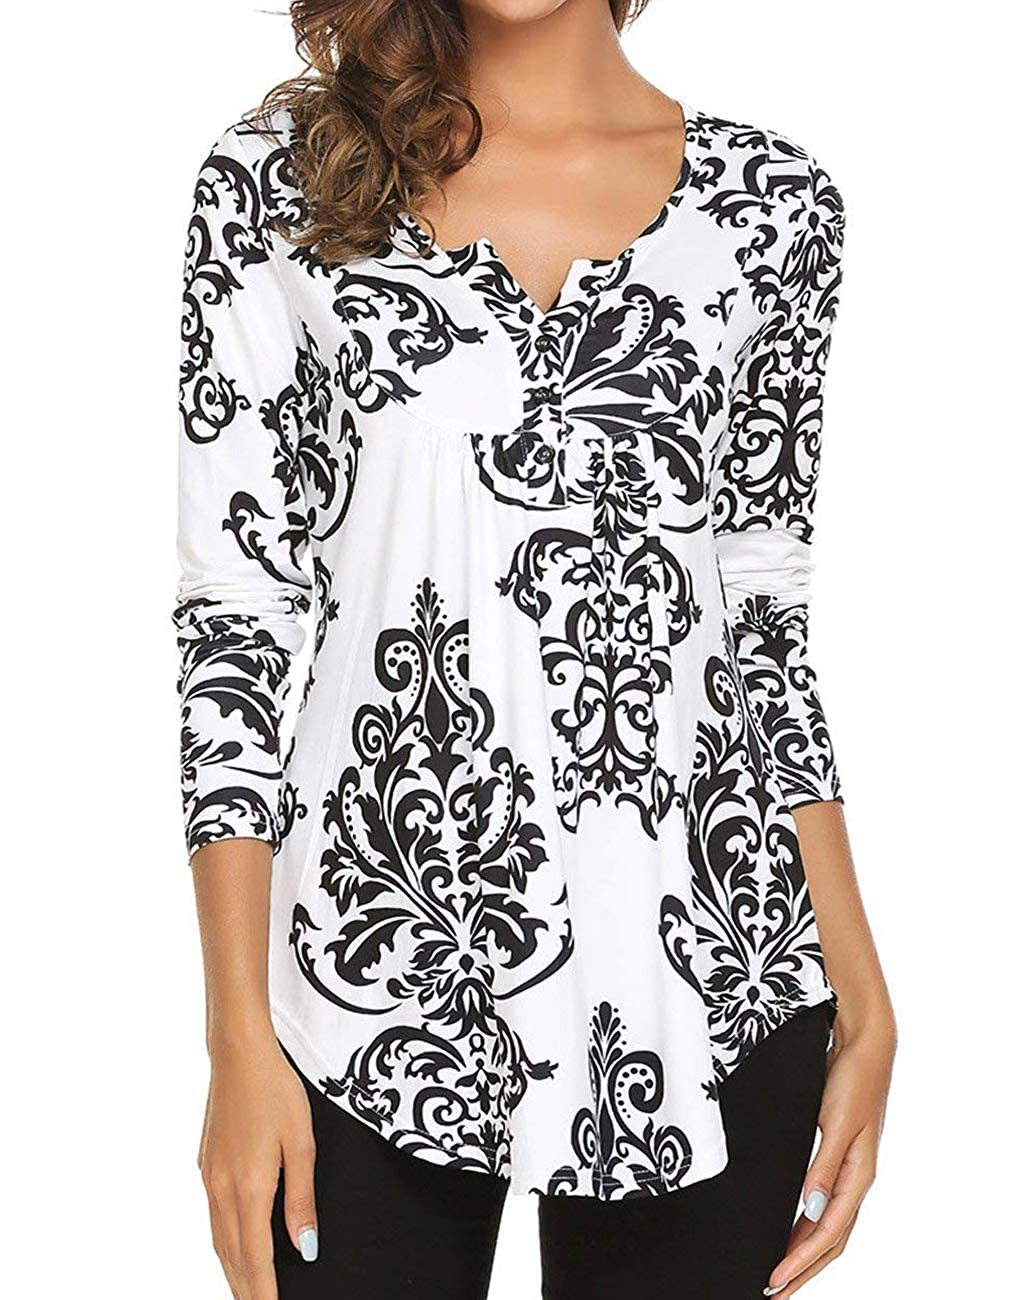 Miskely Women's Paisley Printed Short Sleeve Blouses V Neck Pleated Ruffle Casual Tunic Tops Shirt